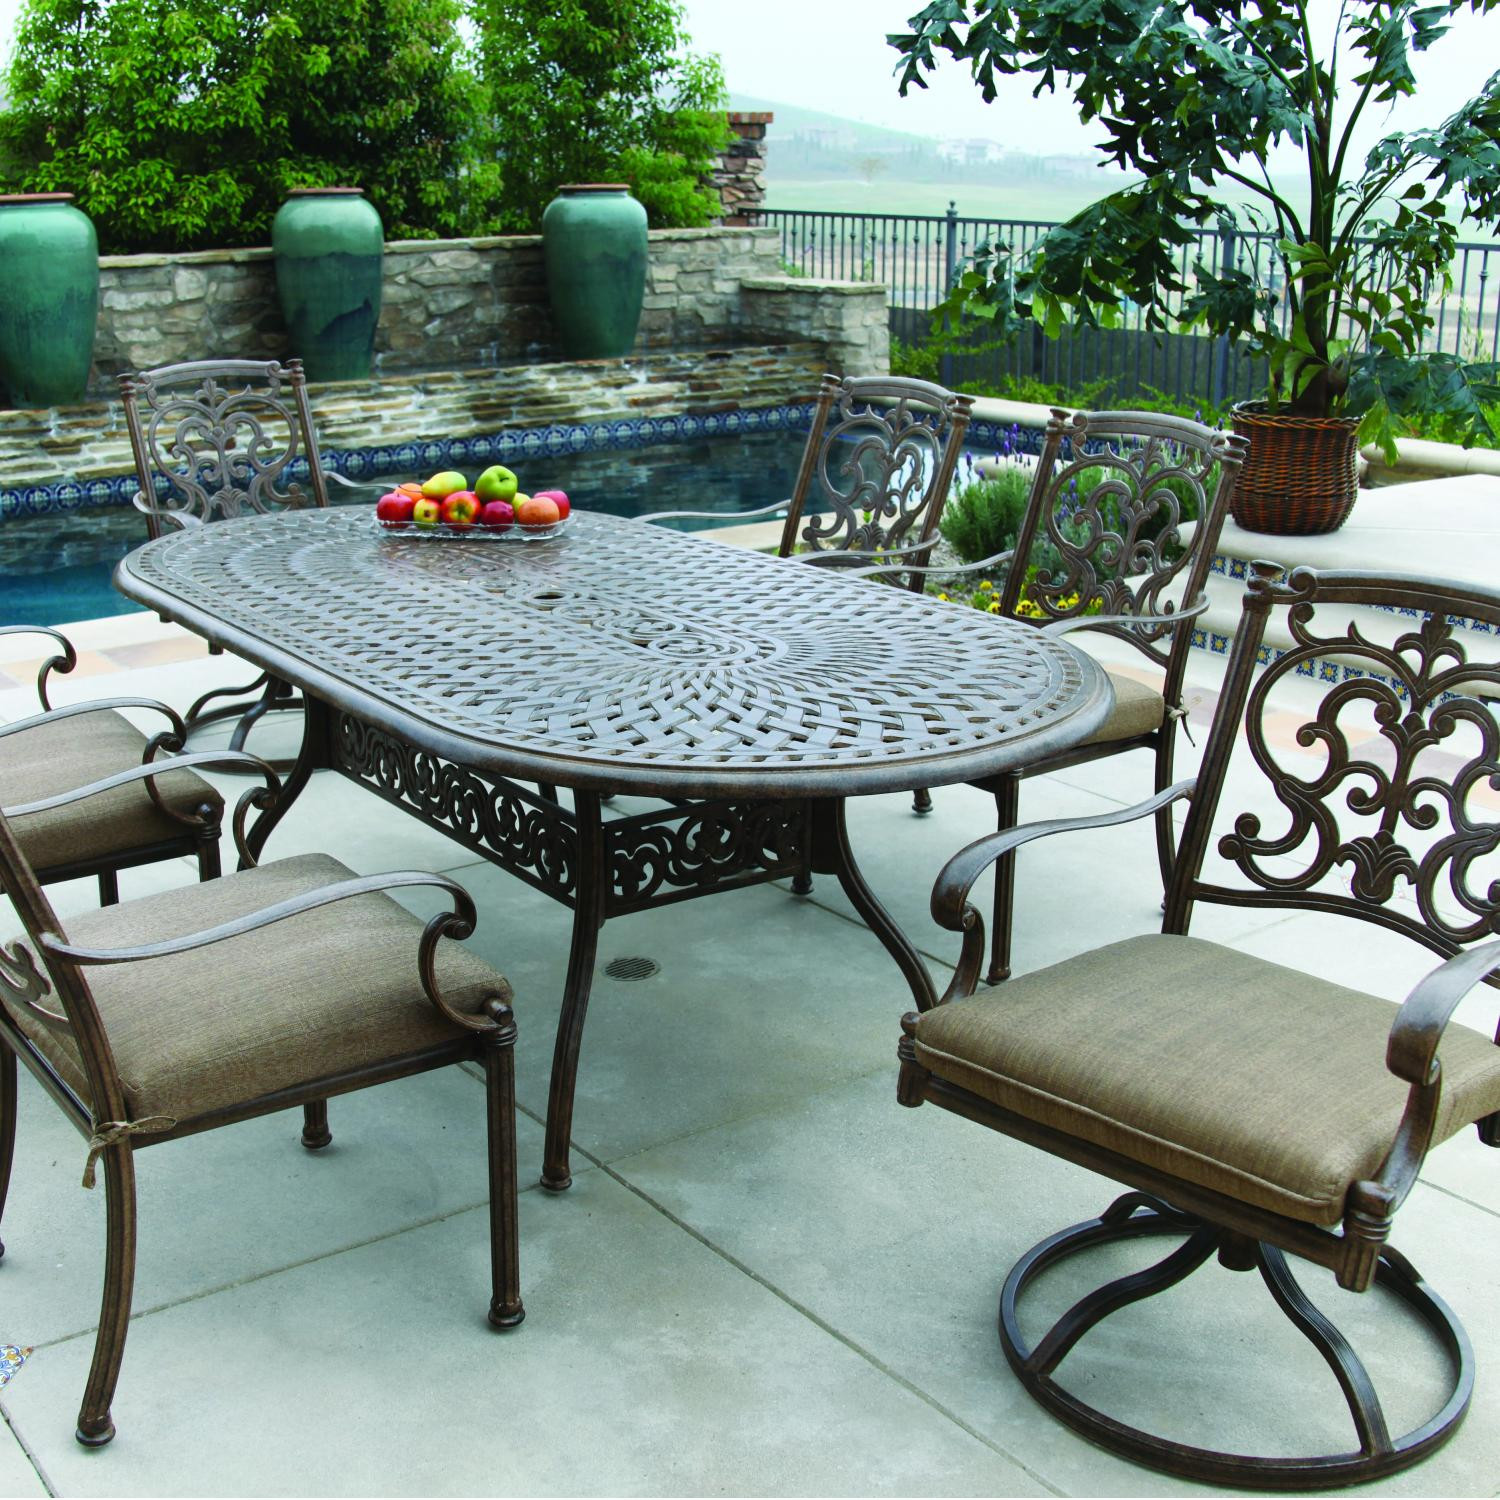 Best ideas about Discontinued Patio Furniture . Save or Pin Patio Furniture Clearance Sale Now.